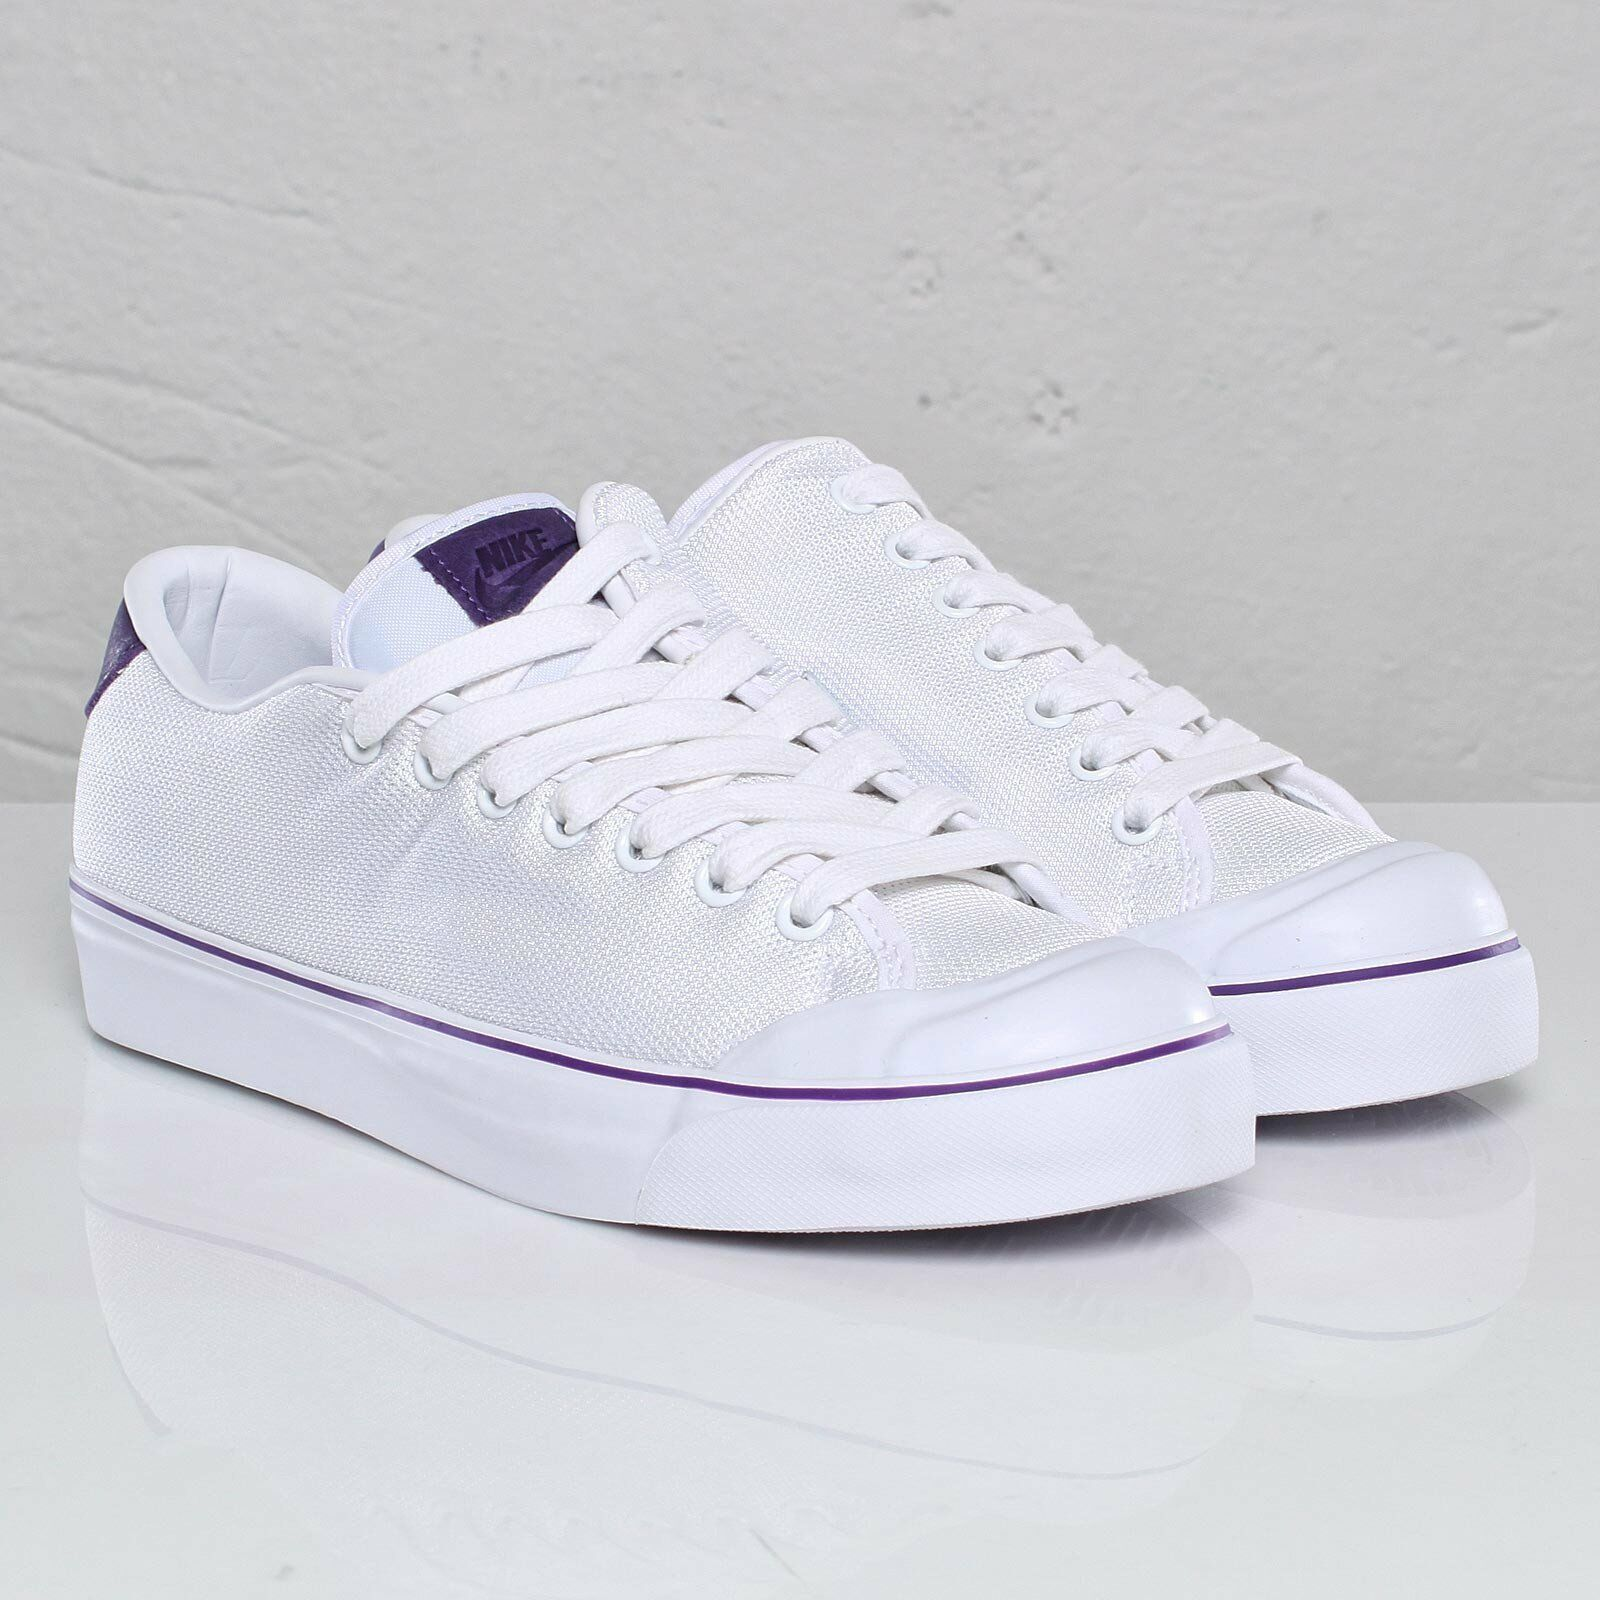 Nike ALL COURT TWIST Neu Gr:40 US:7 White/Purple Sommer Sneaker Capri flash